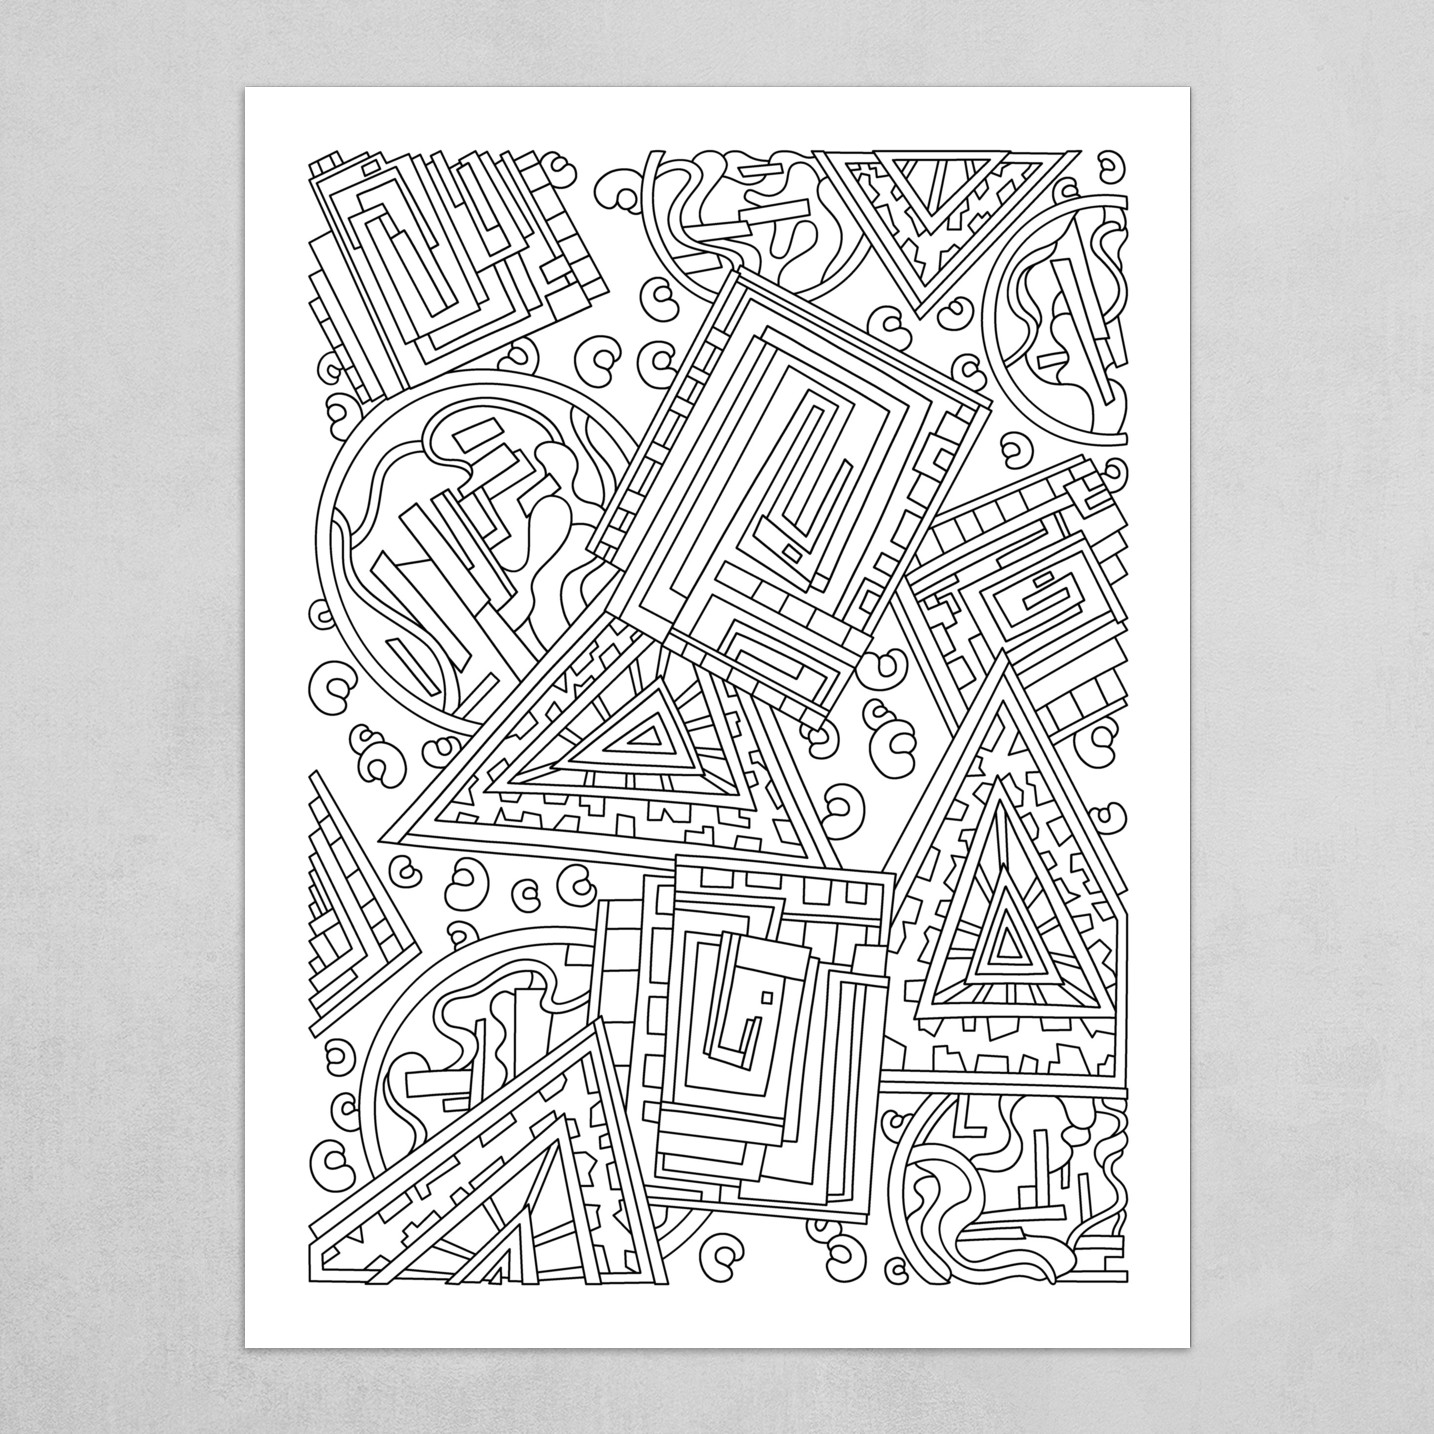 Wandering Abstract Line Art 15: Black & White